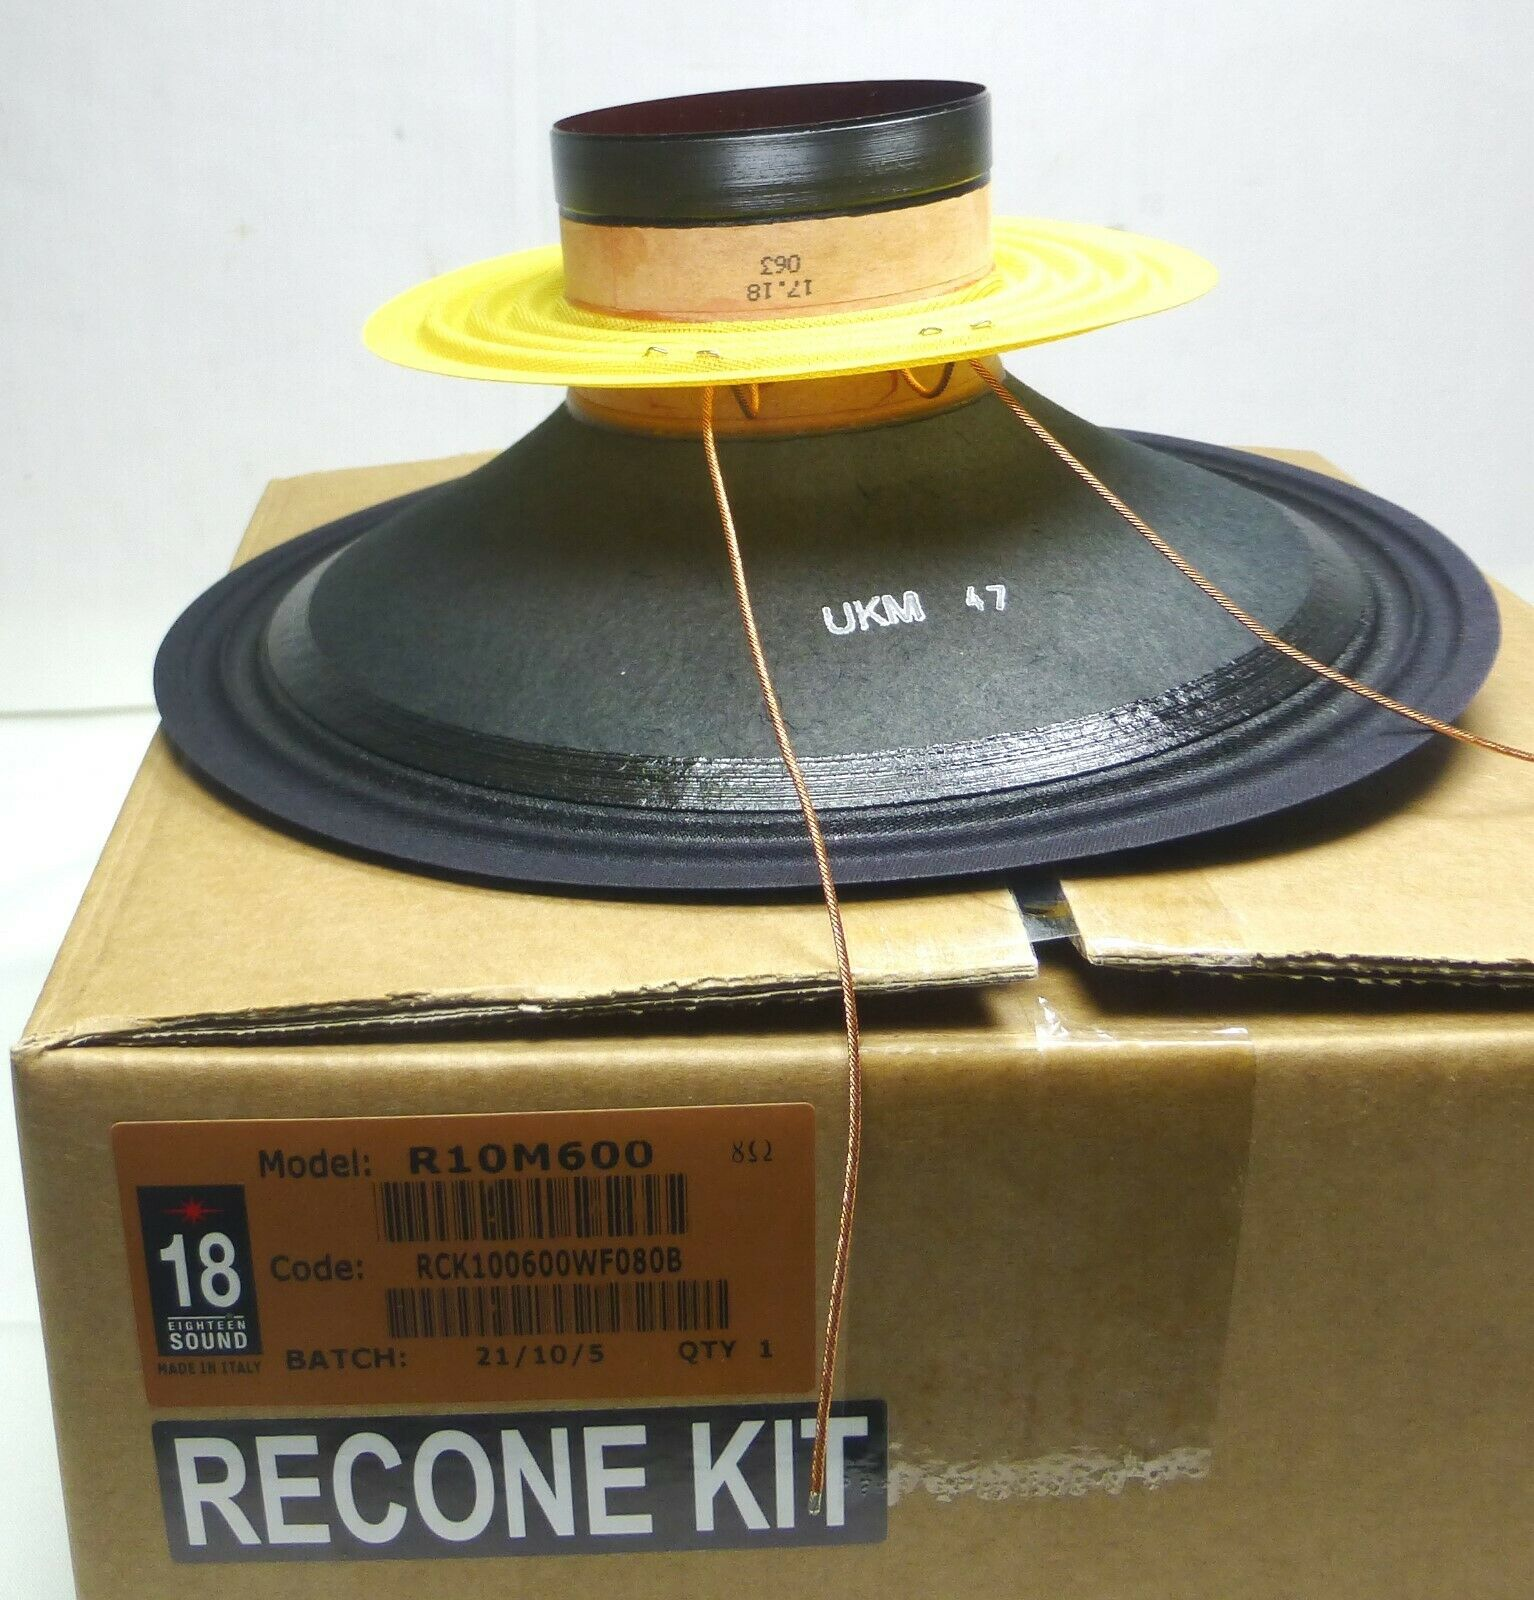 Eighteen Sound   18 Sound  -10  Re-Cone Kit - R 10M600.